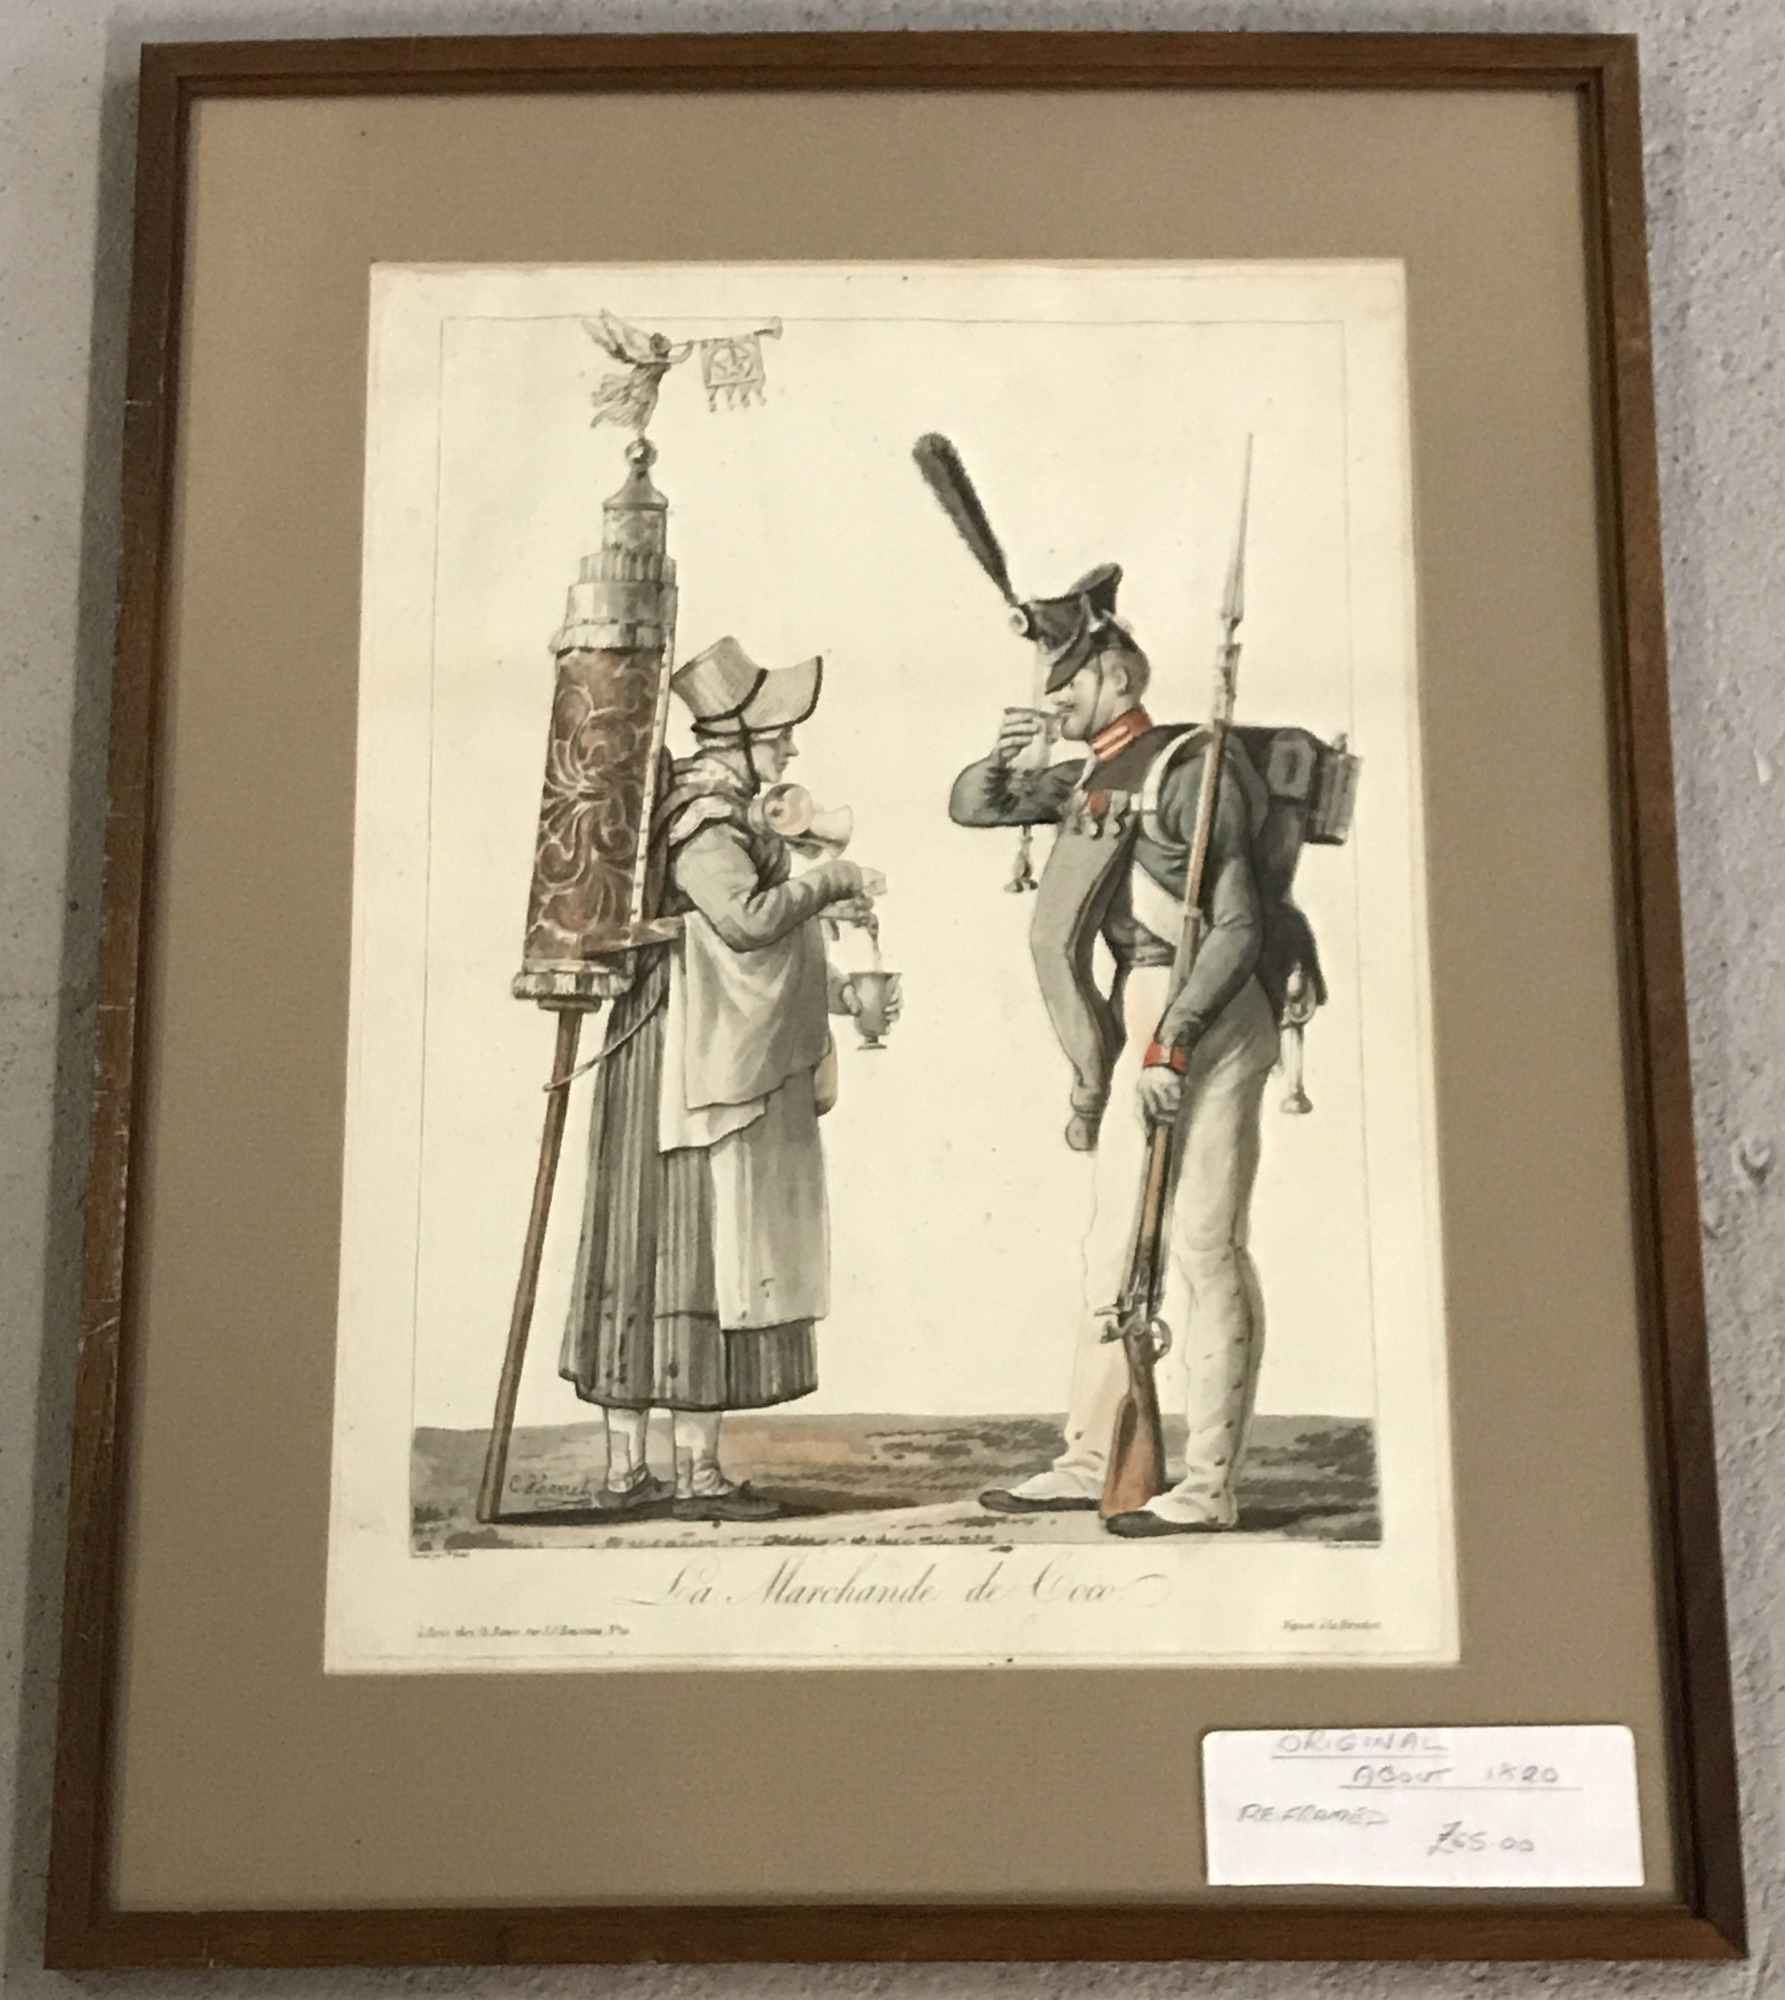 A framed and glazed engraving of a Chocolate seller and a soldier.